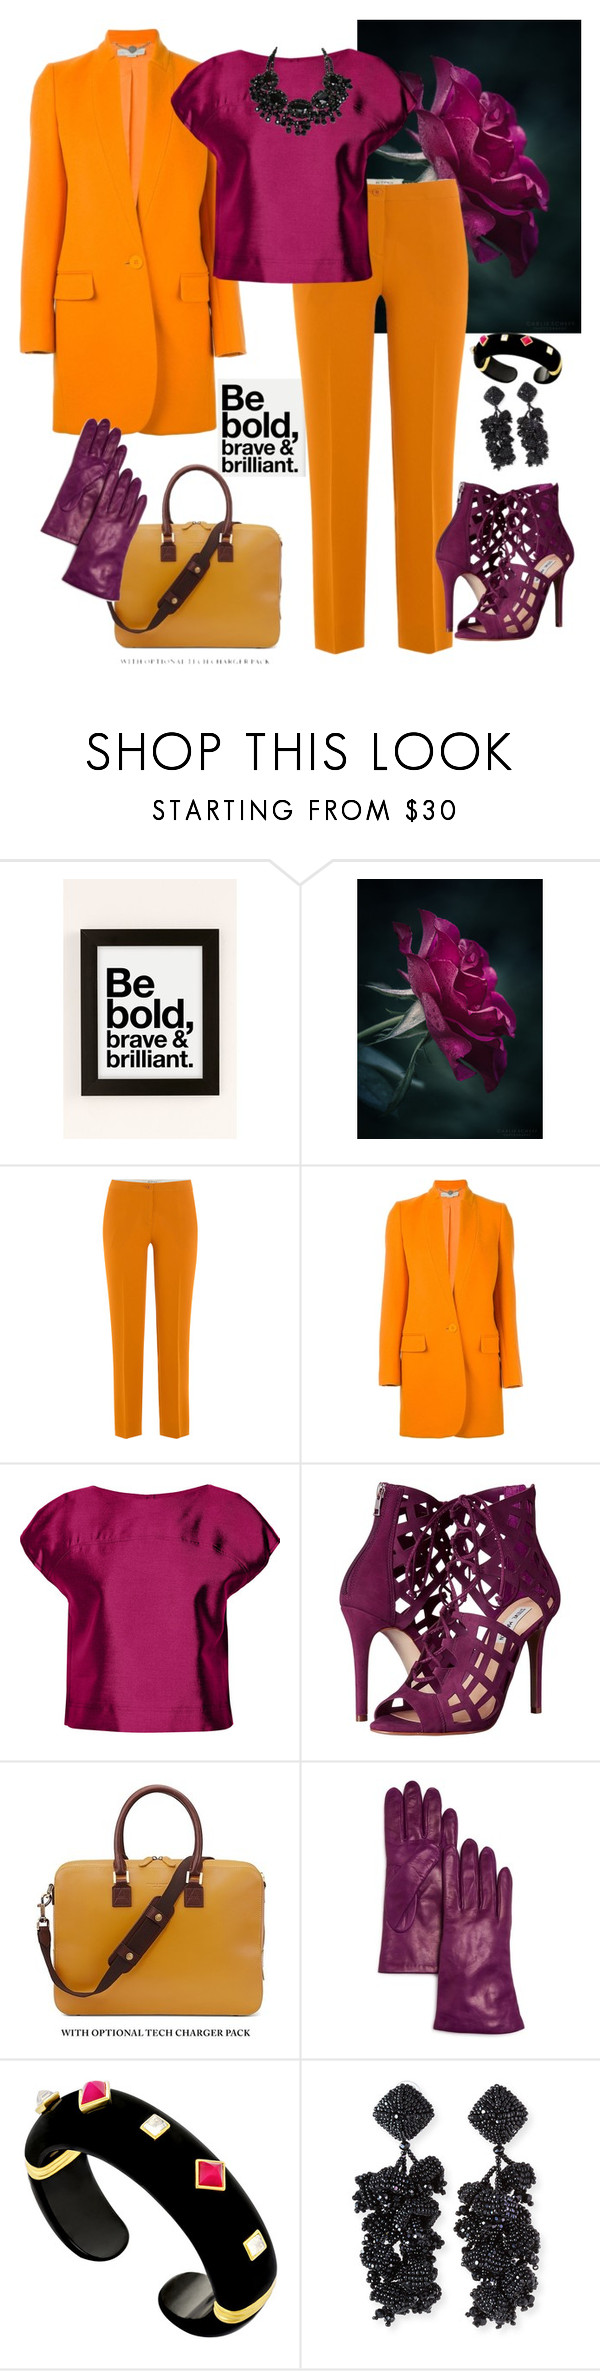 """""""Go Boldly🌻"""" by parnett ❤ liked on Polyvore featuring Urban Outfitters, Etro, STELLA McCARTNEY, Raoul, Steve Madden, Aspinal of London, Bloomingdale's and NOIR Sachin + Babi"""